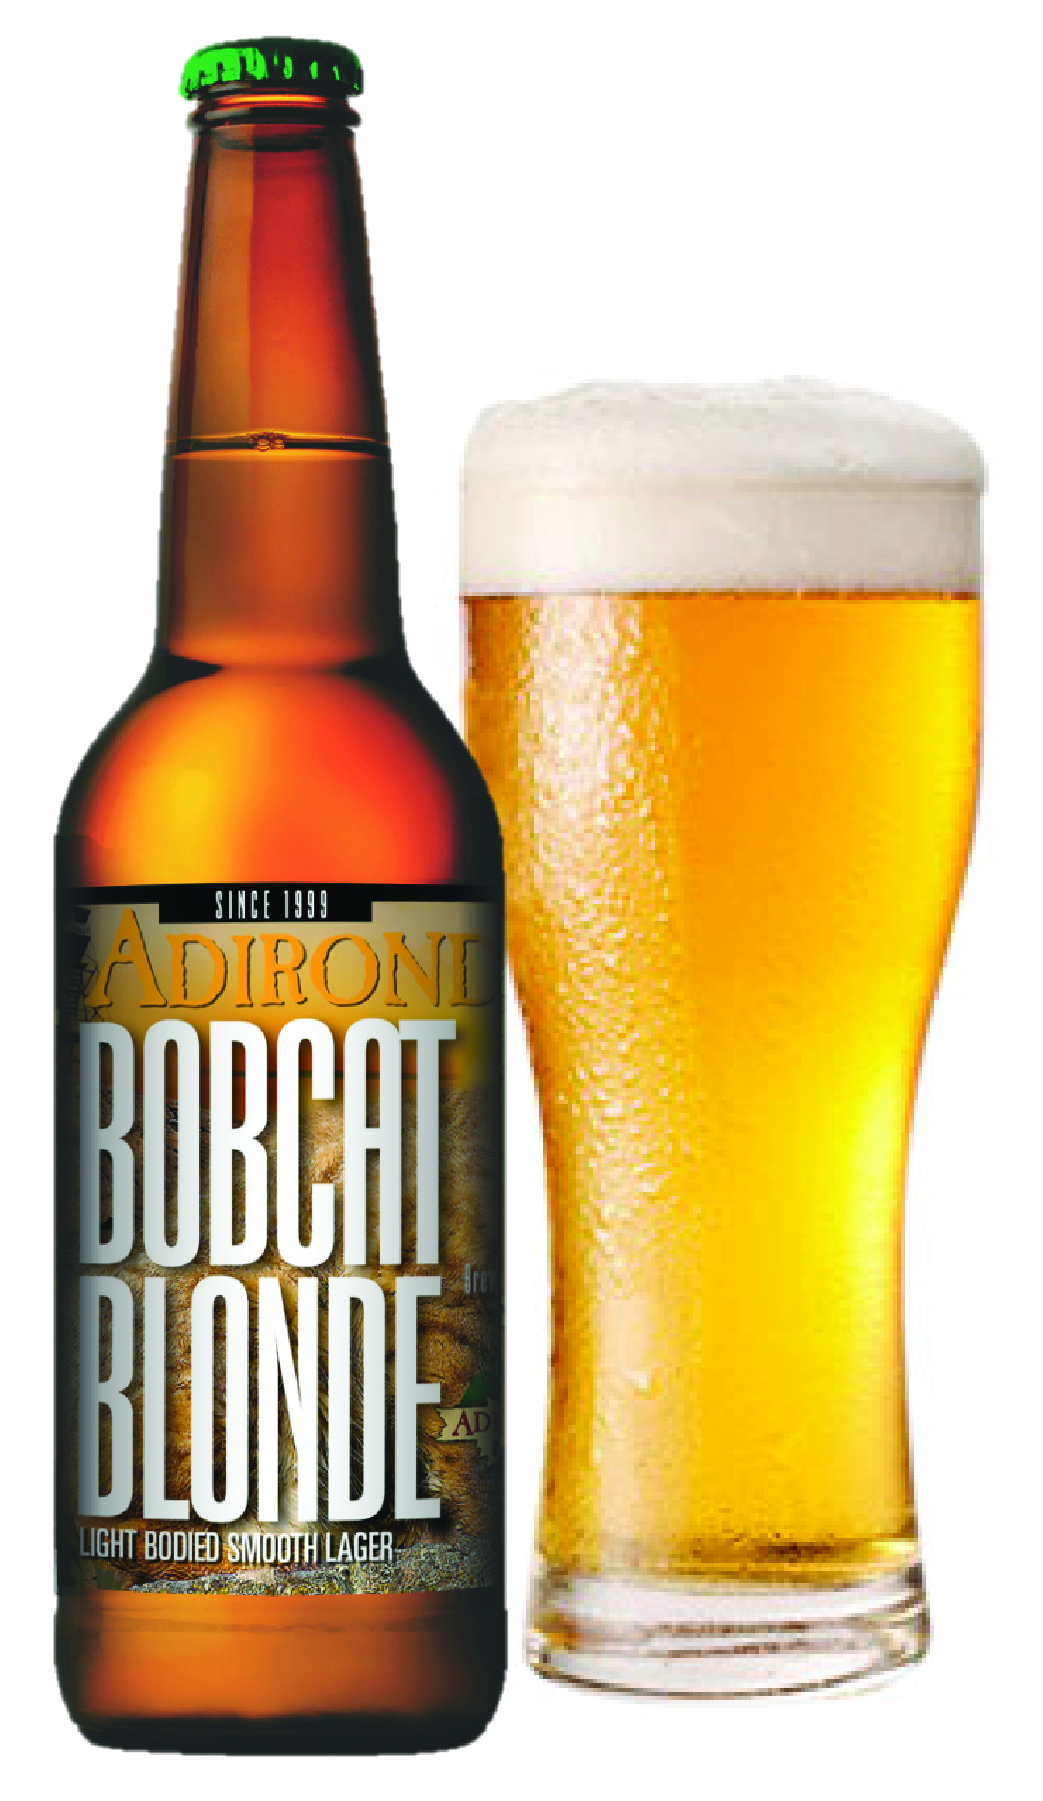 Bobcat Blonde Lager